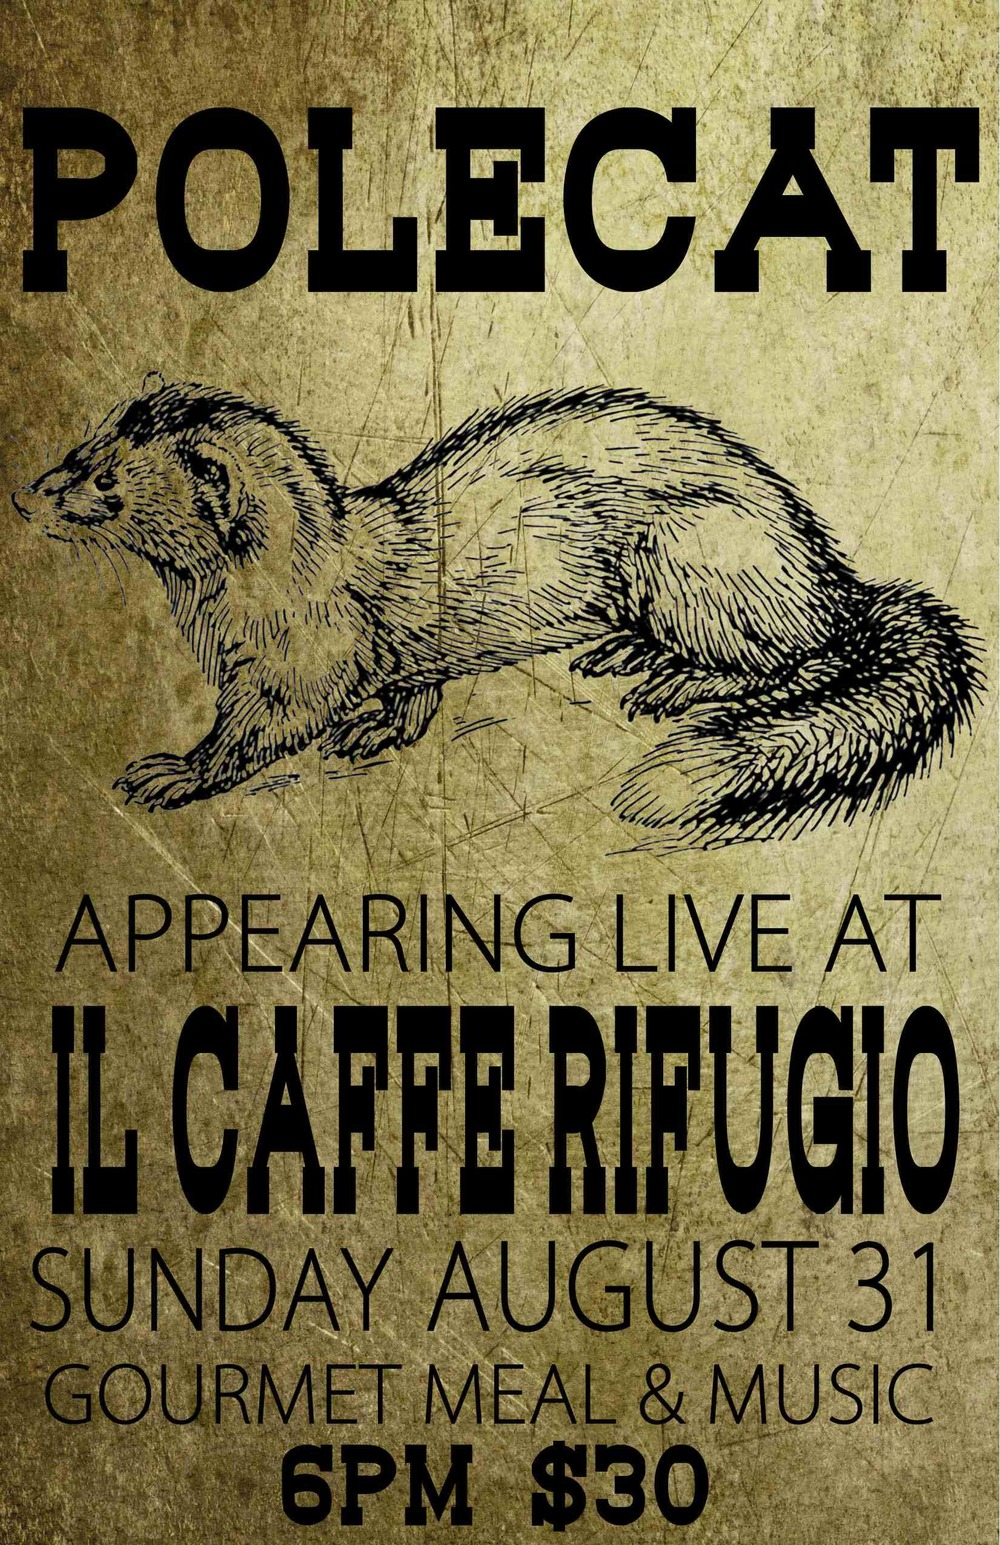 Polecat will appear live at Il Caffe Rifugio Restaurante on the beautiful grounds of Amelia's Garden and Gallery